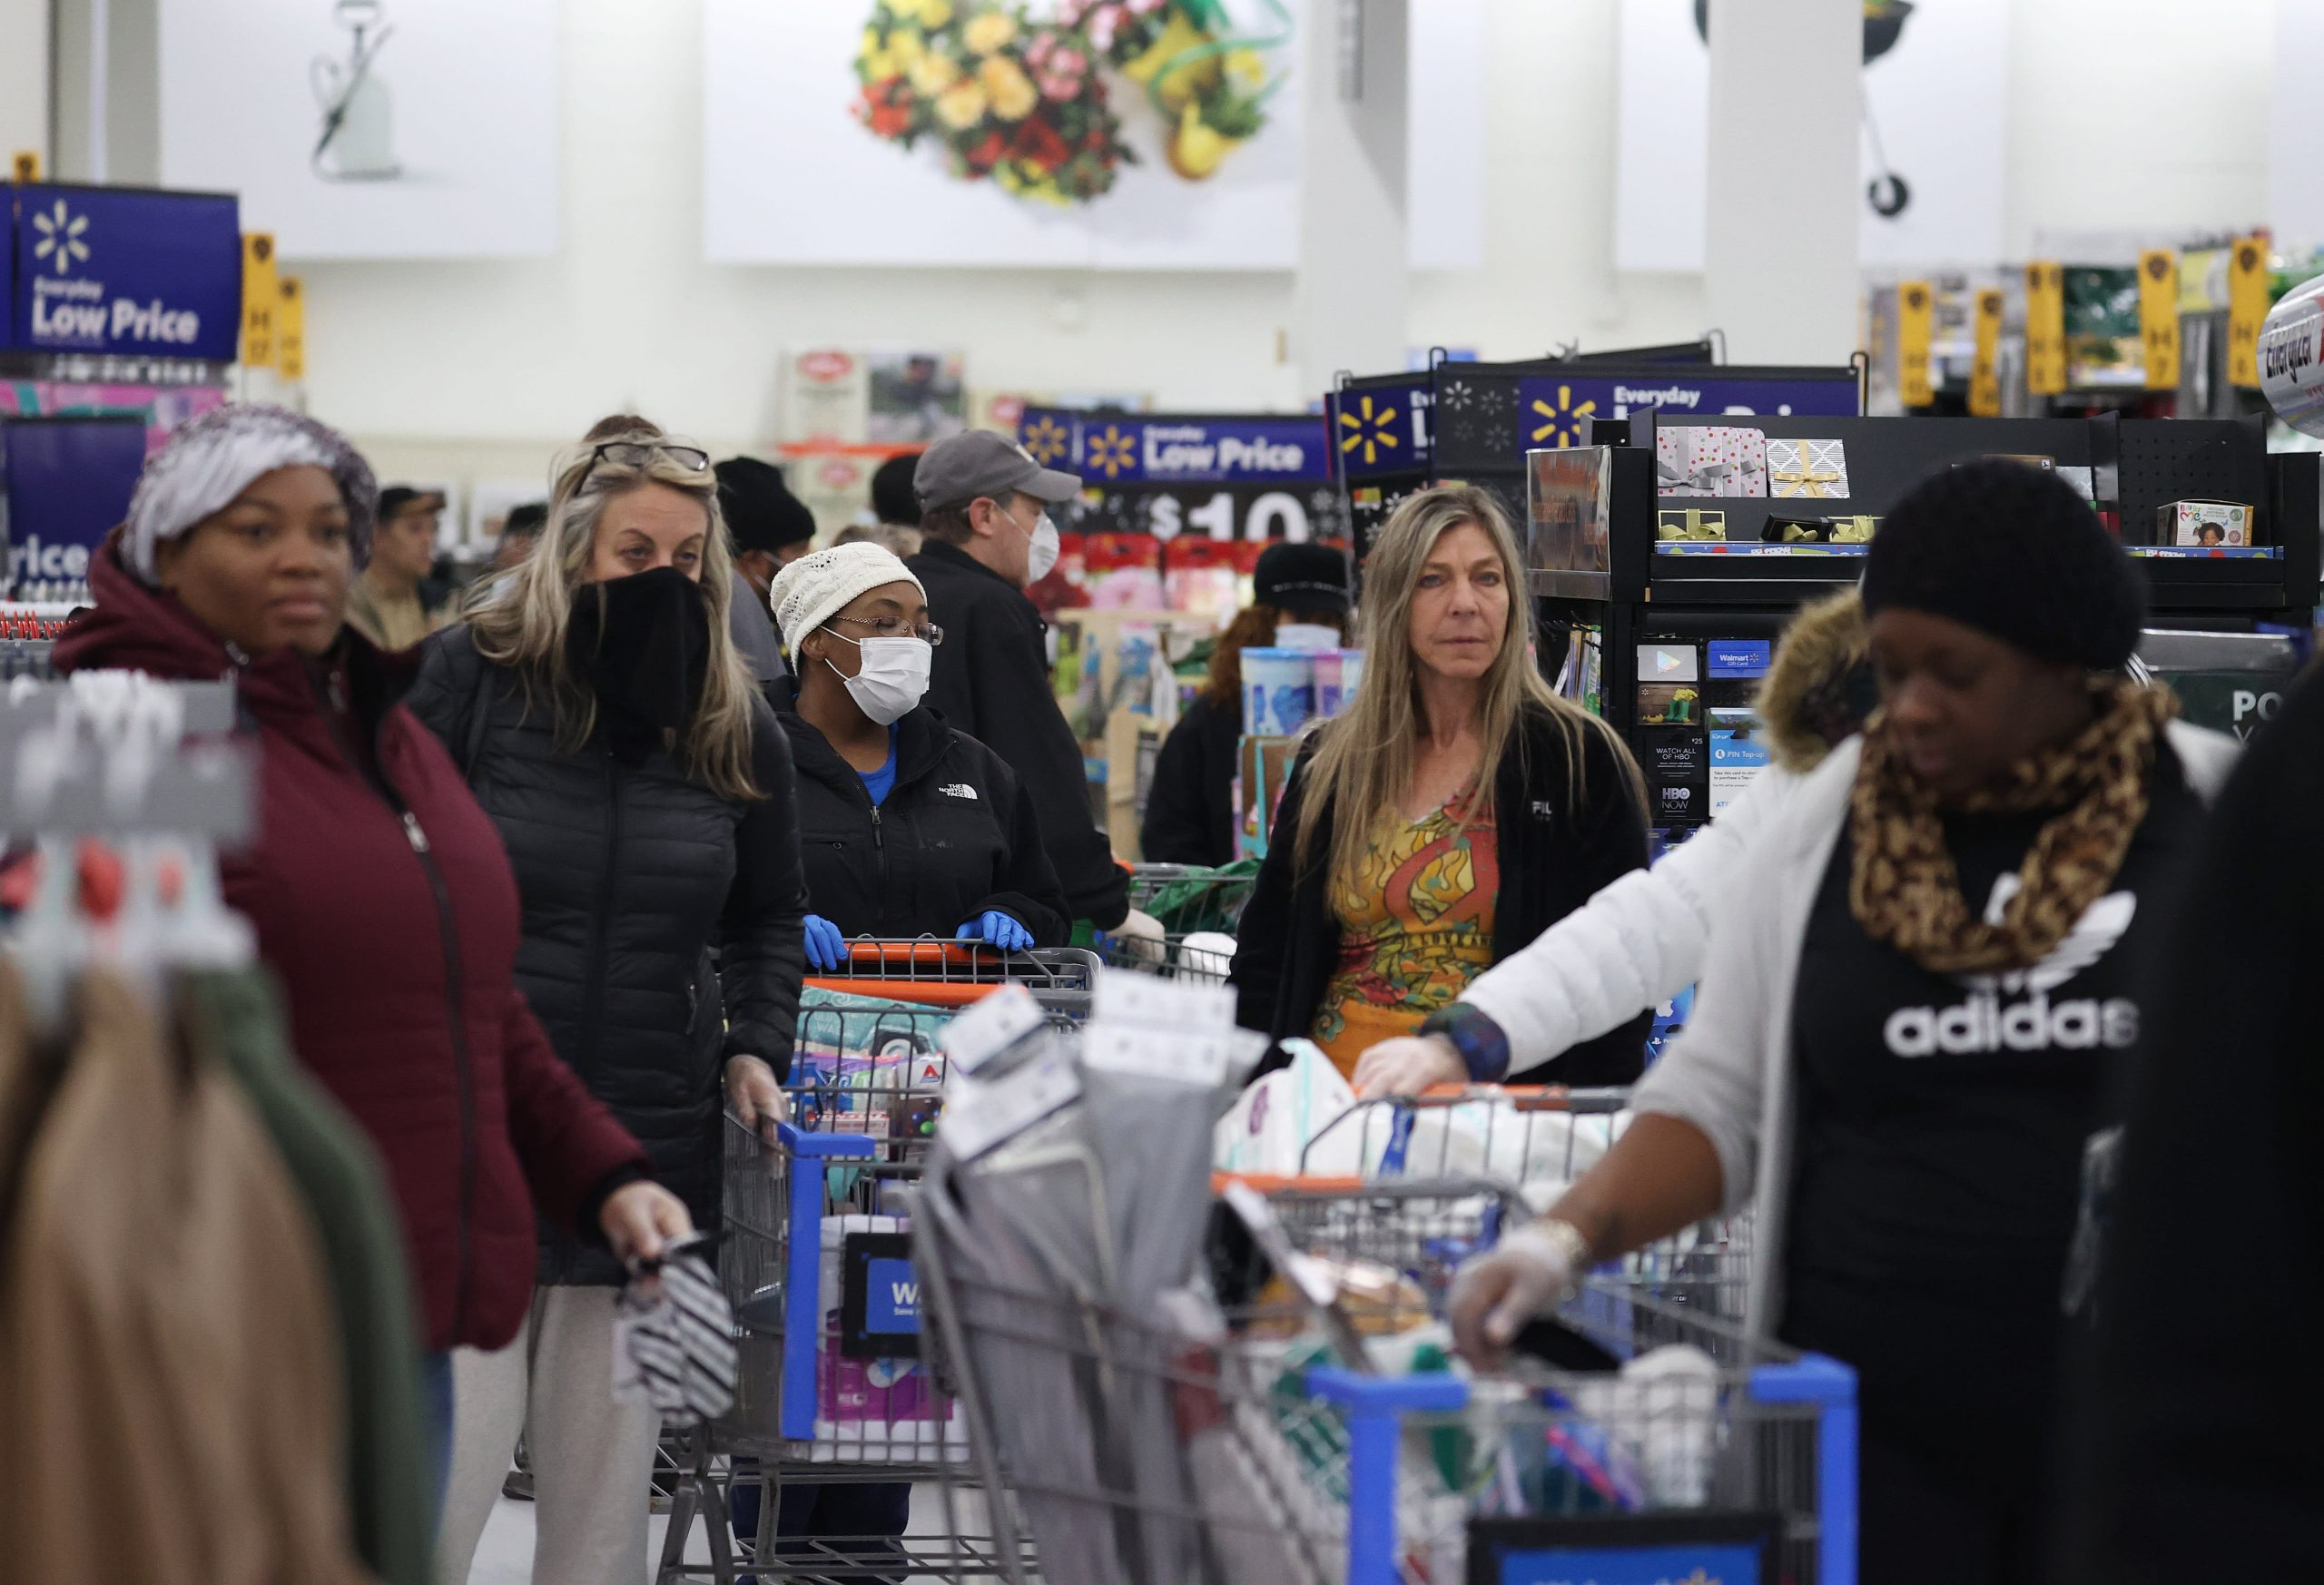 Economists say US in short deep recession, but consumers expected to keep spending despite job losses